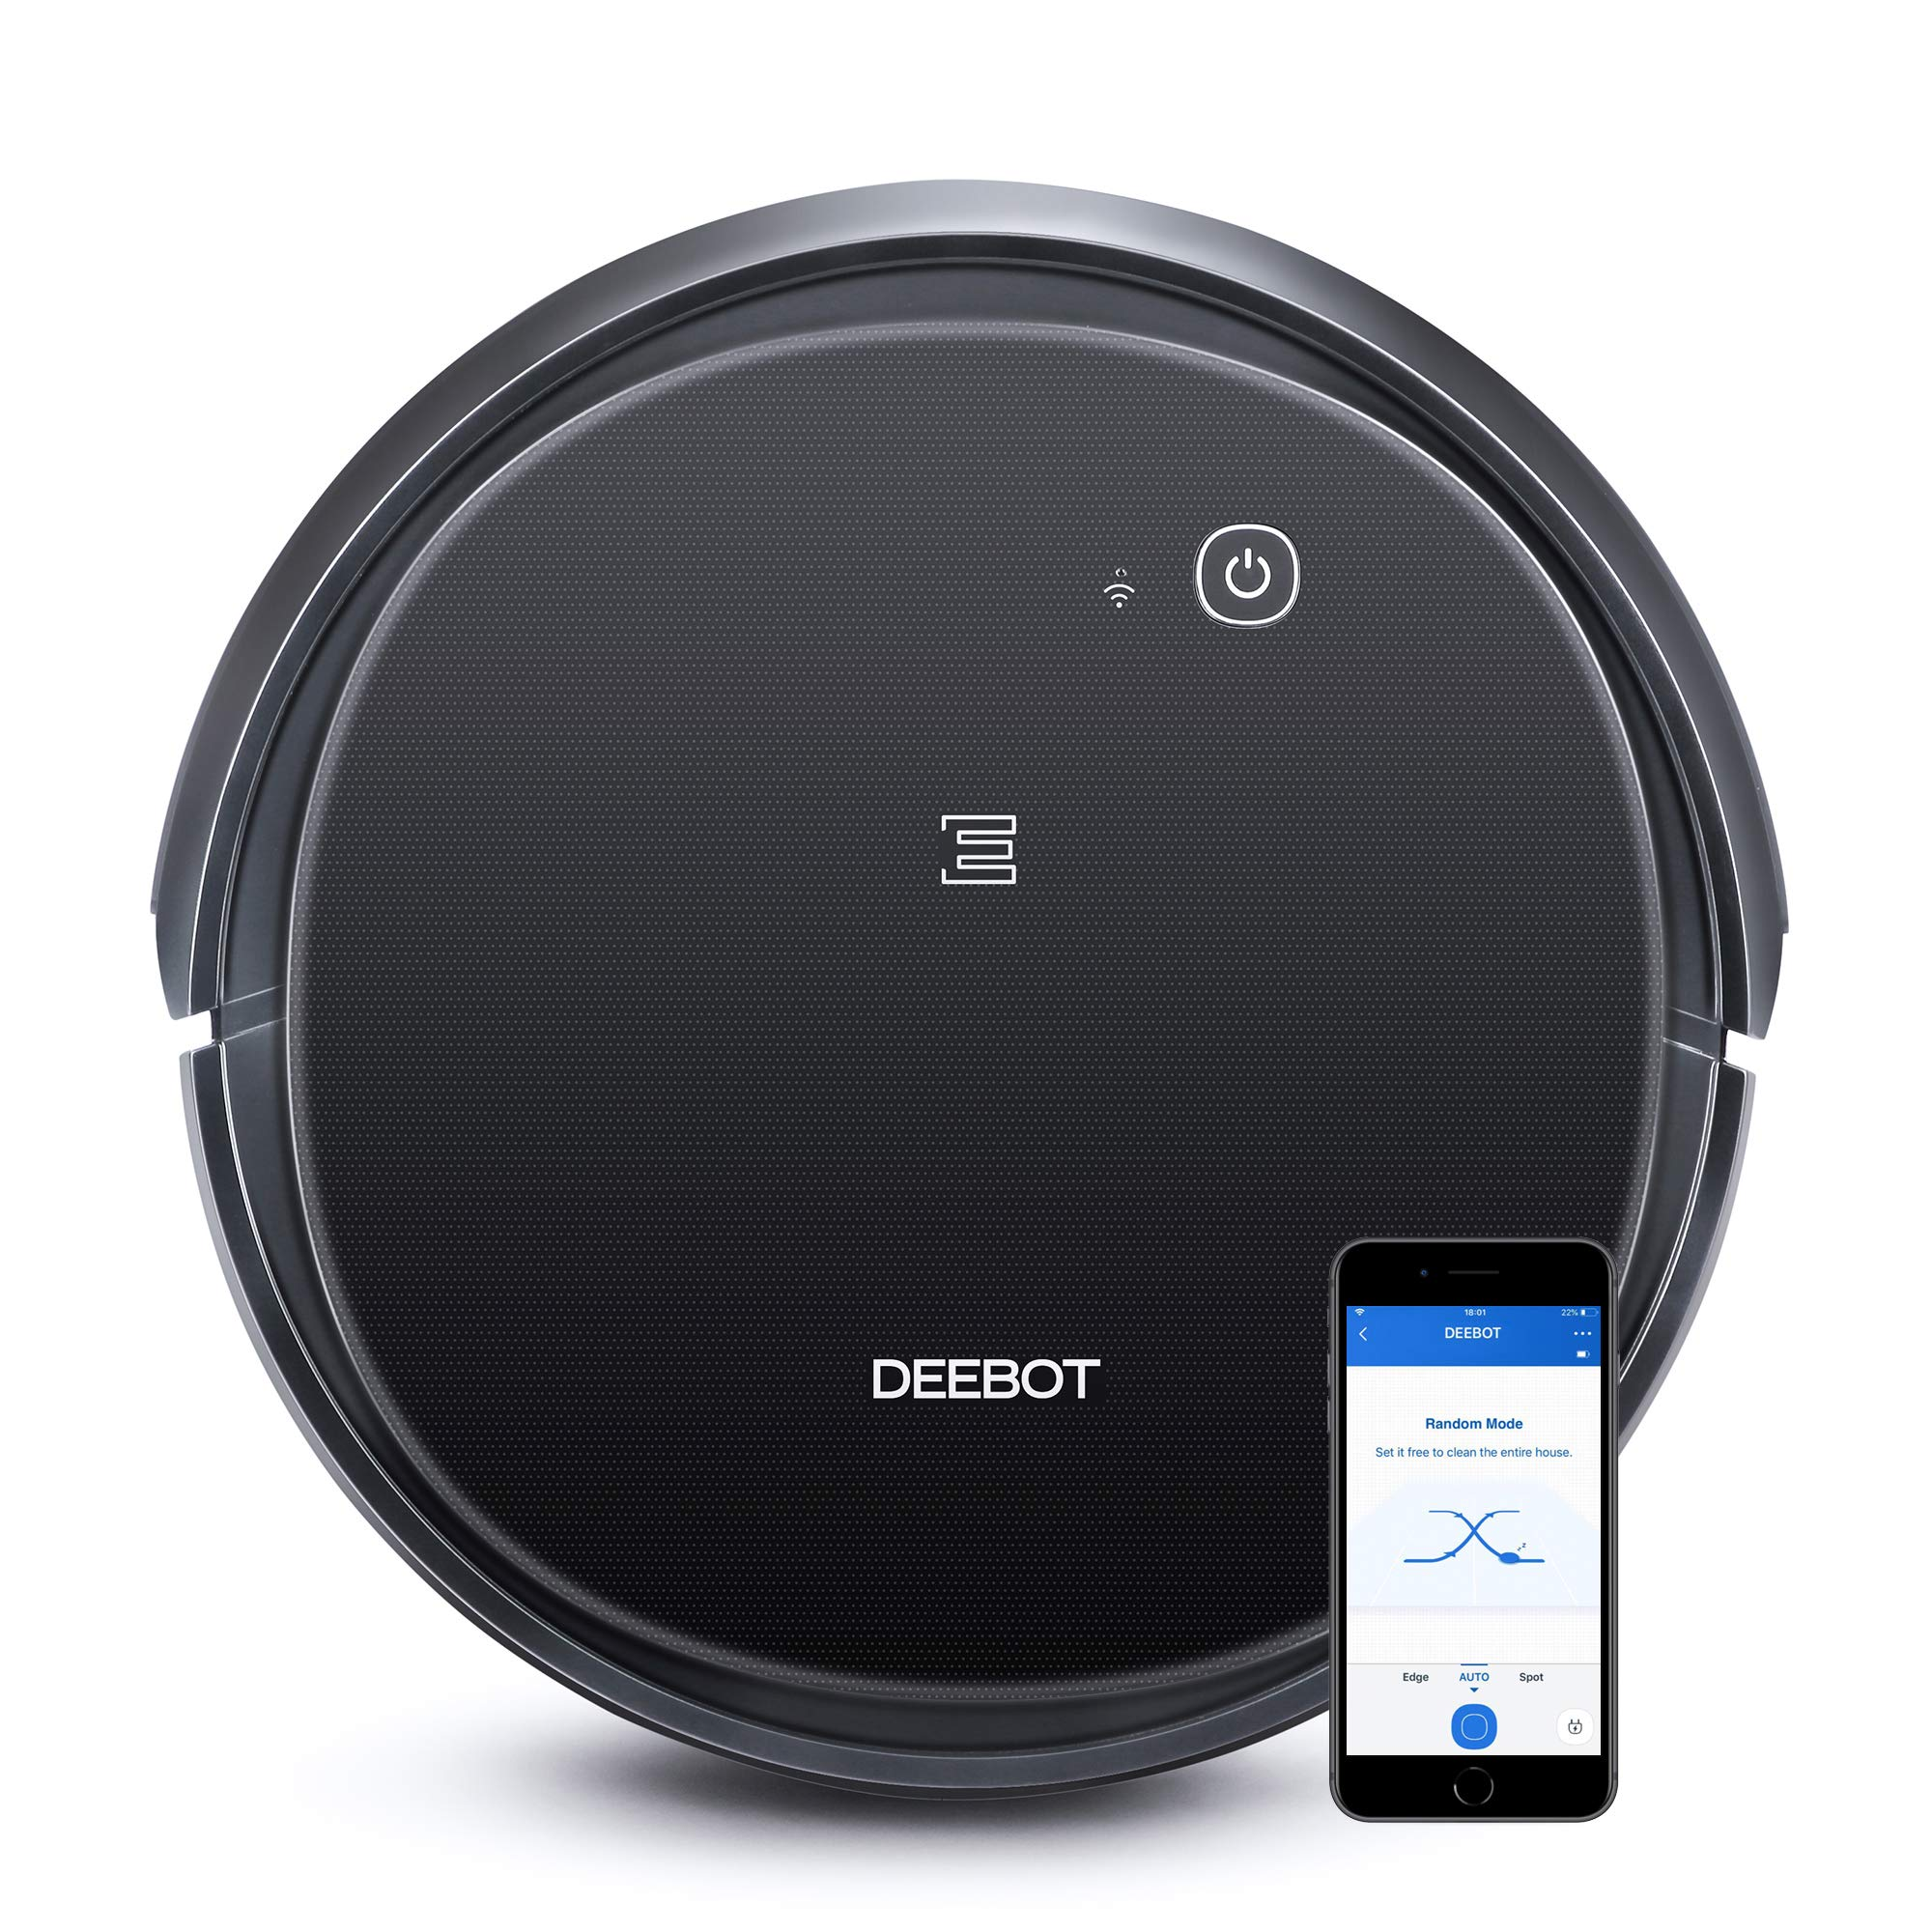 ECOVACS DEEBOT 500 Robotic Vacuum Cleaner with Max Power Suction, Up to 110 min Runtime, Hard Floors & Carpets, App Controls, Self-Charging, Quiet by ECOVACS